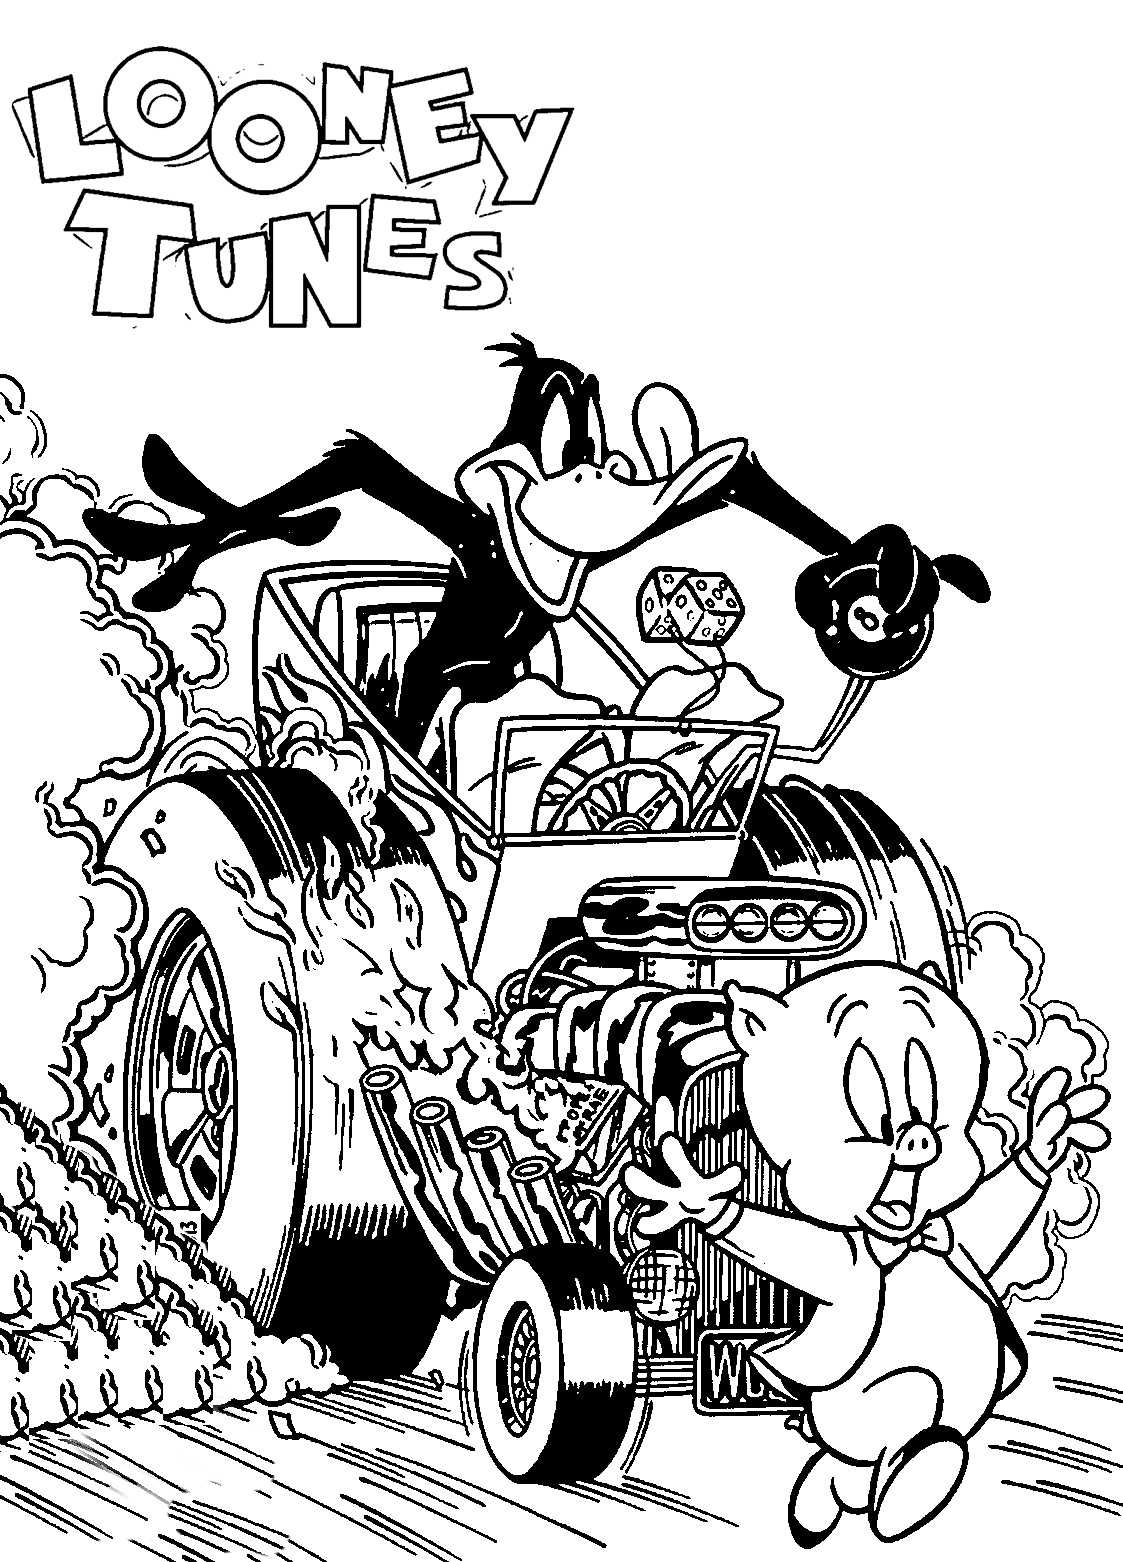 LooneyTunes 211 CVR The Looney Tunes Show Coloring Page